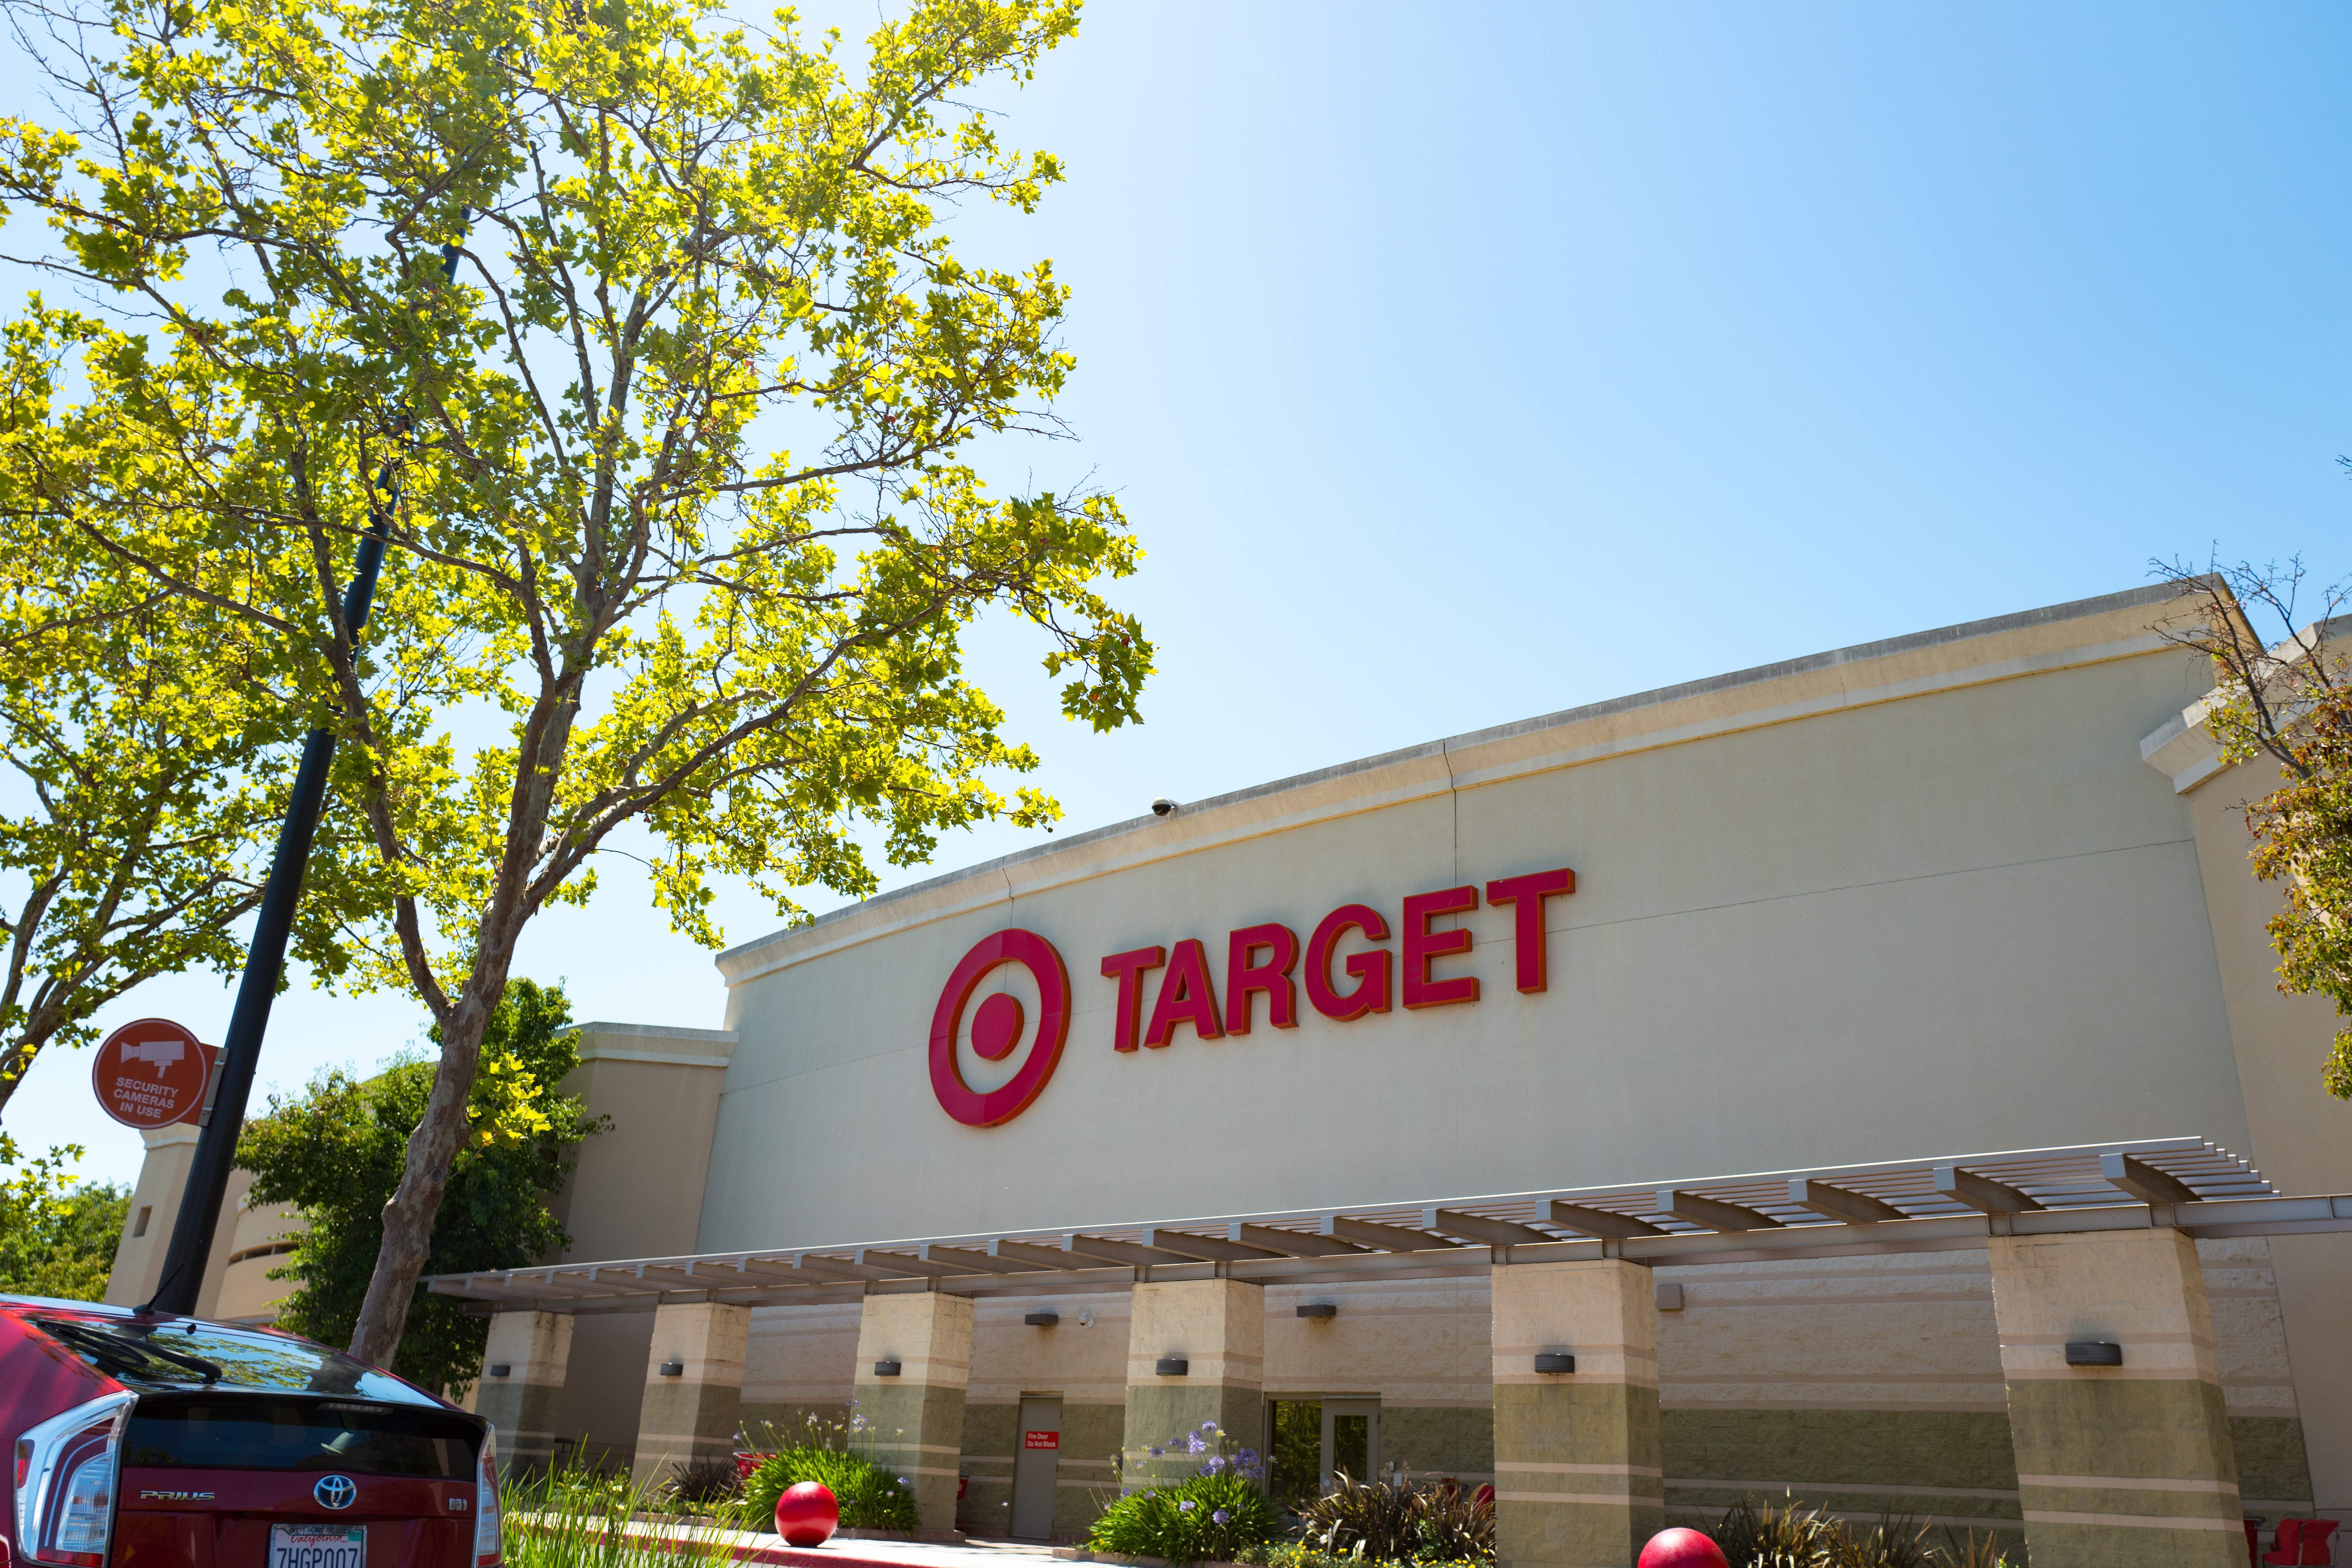 Here's the Real Reason Why You Can't Buy Just One Thing at Target